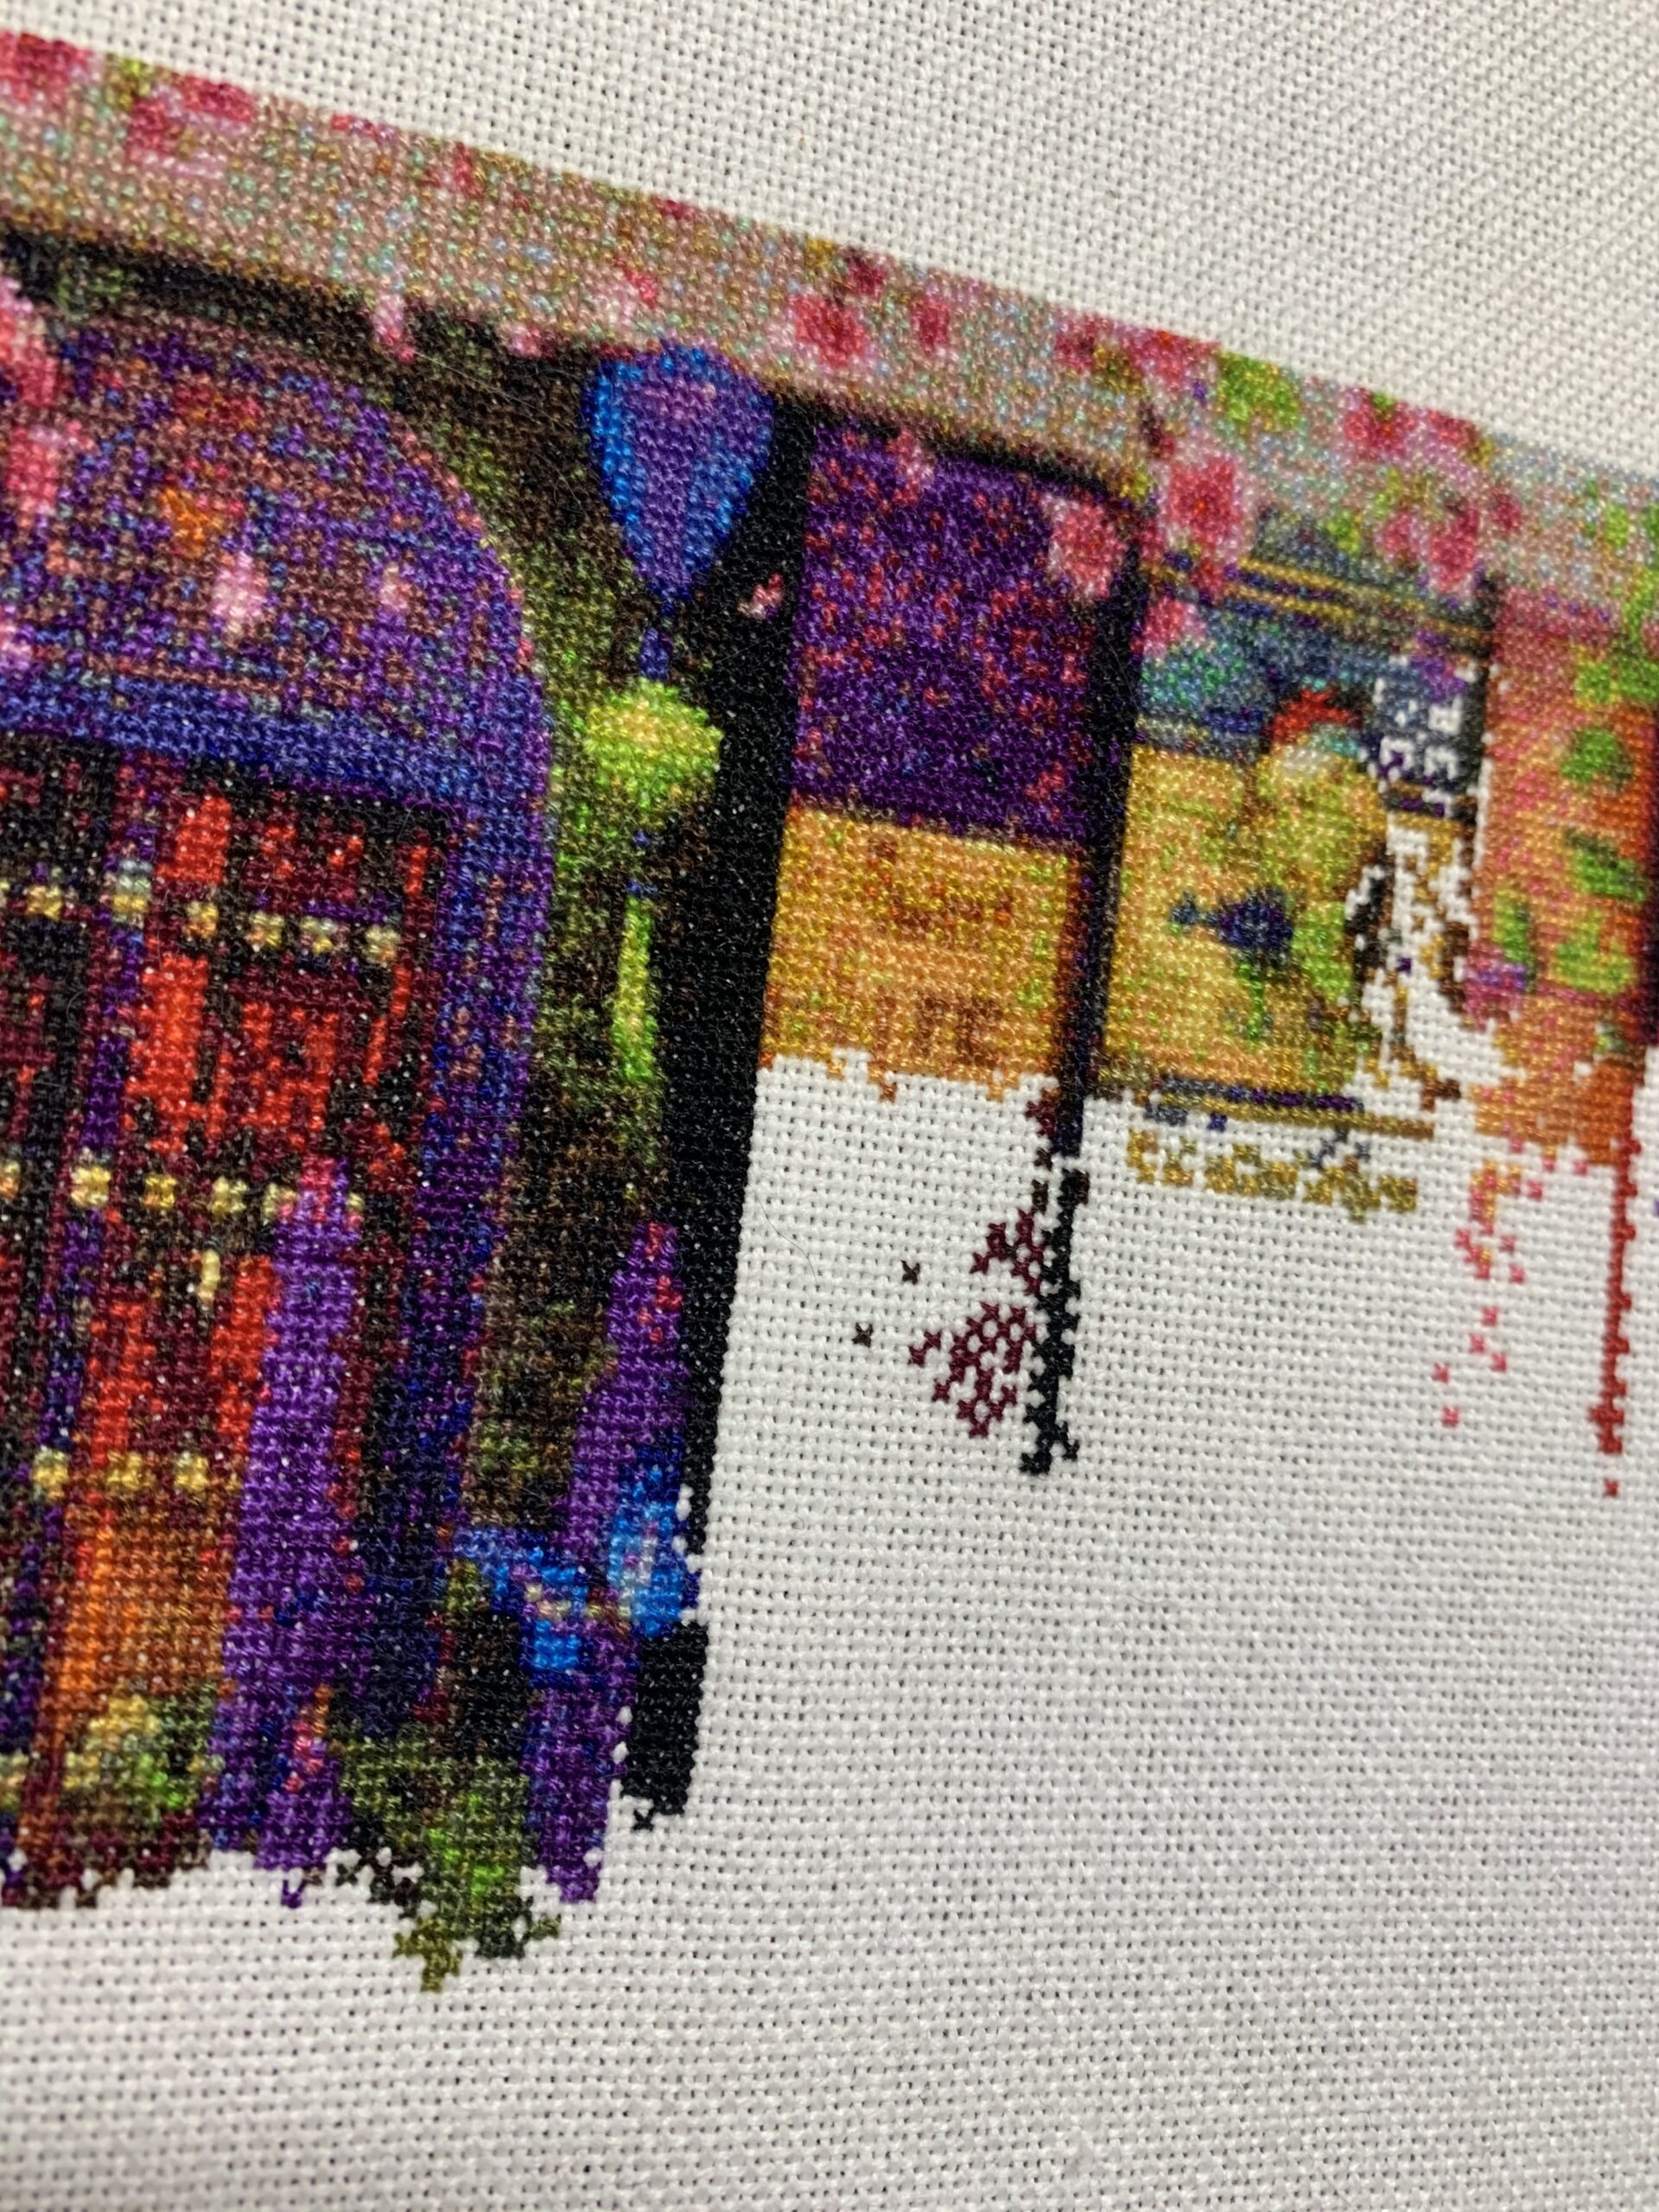 A Stitch In Time October 20